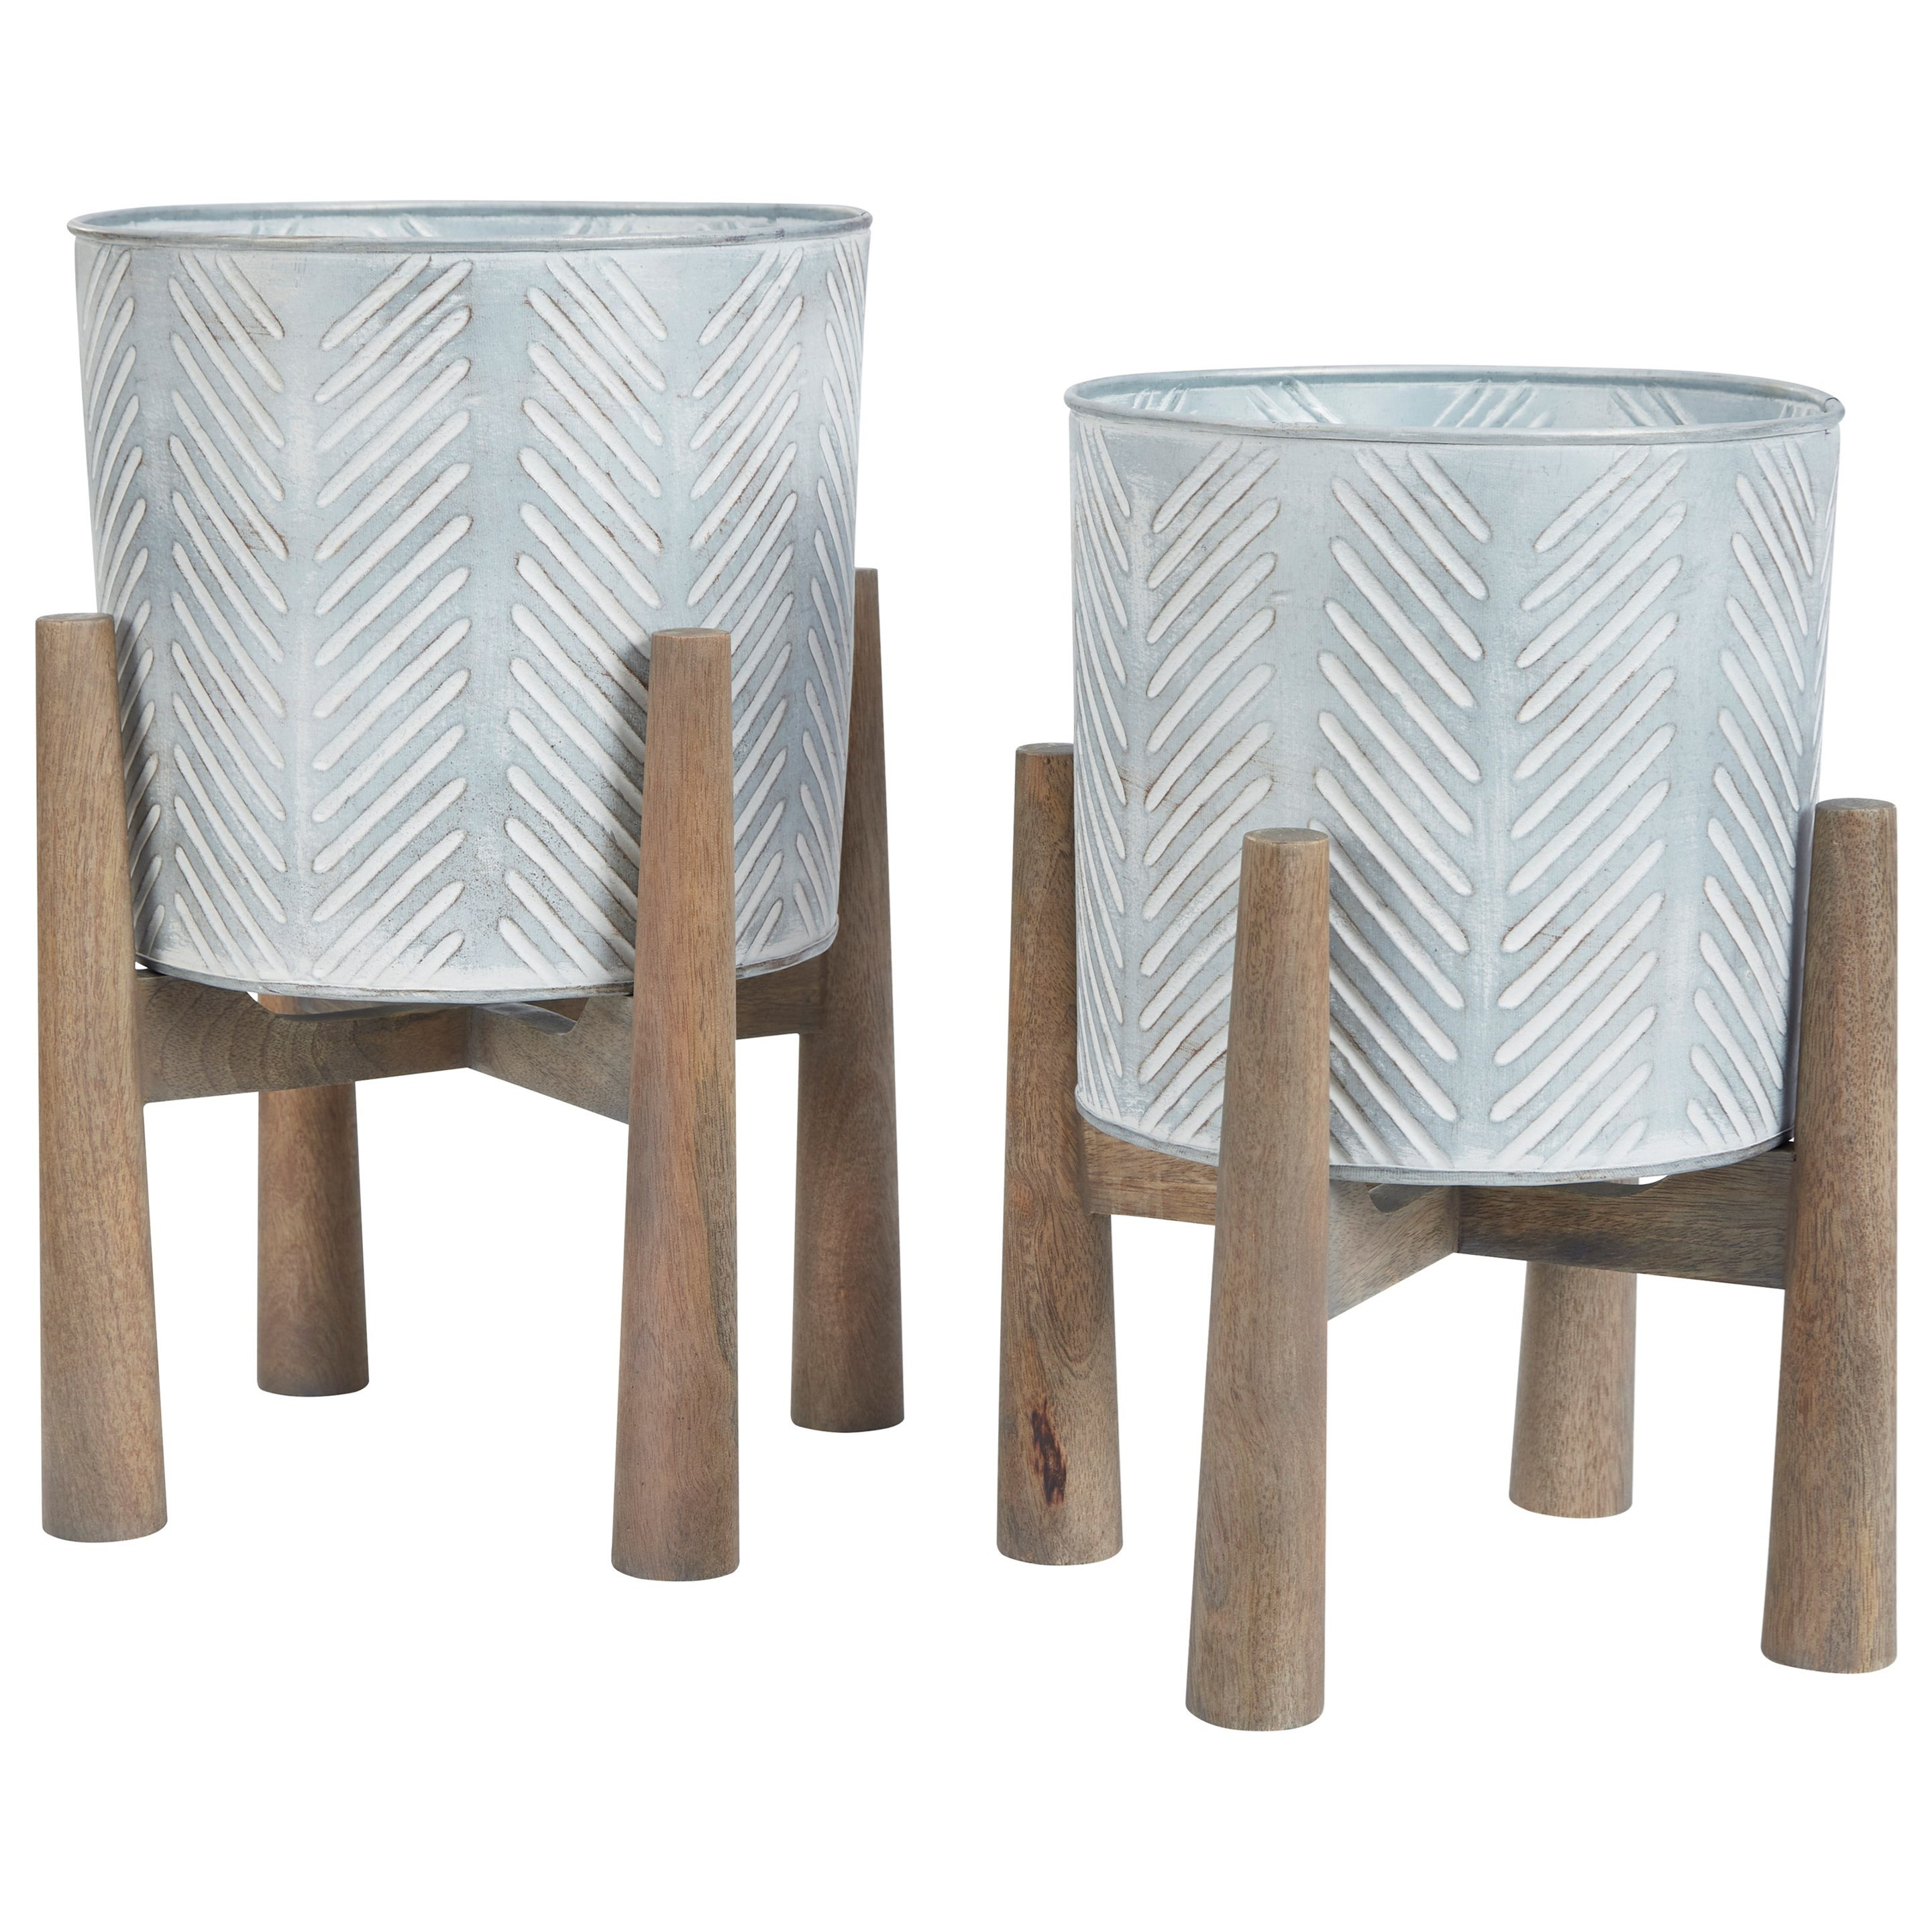 Accents Domele Antique Gray/Brown Planter Set by Benchcraft at Virginia Furniture Market